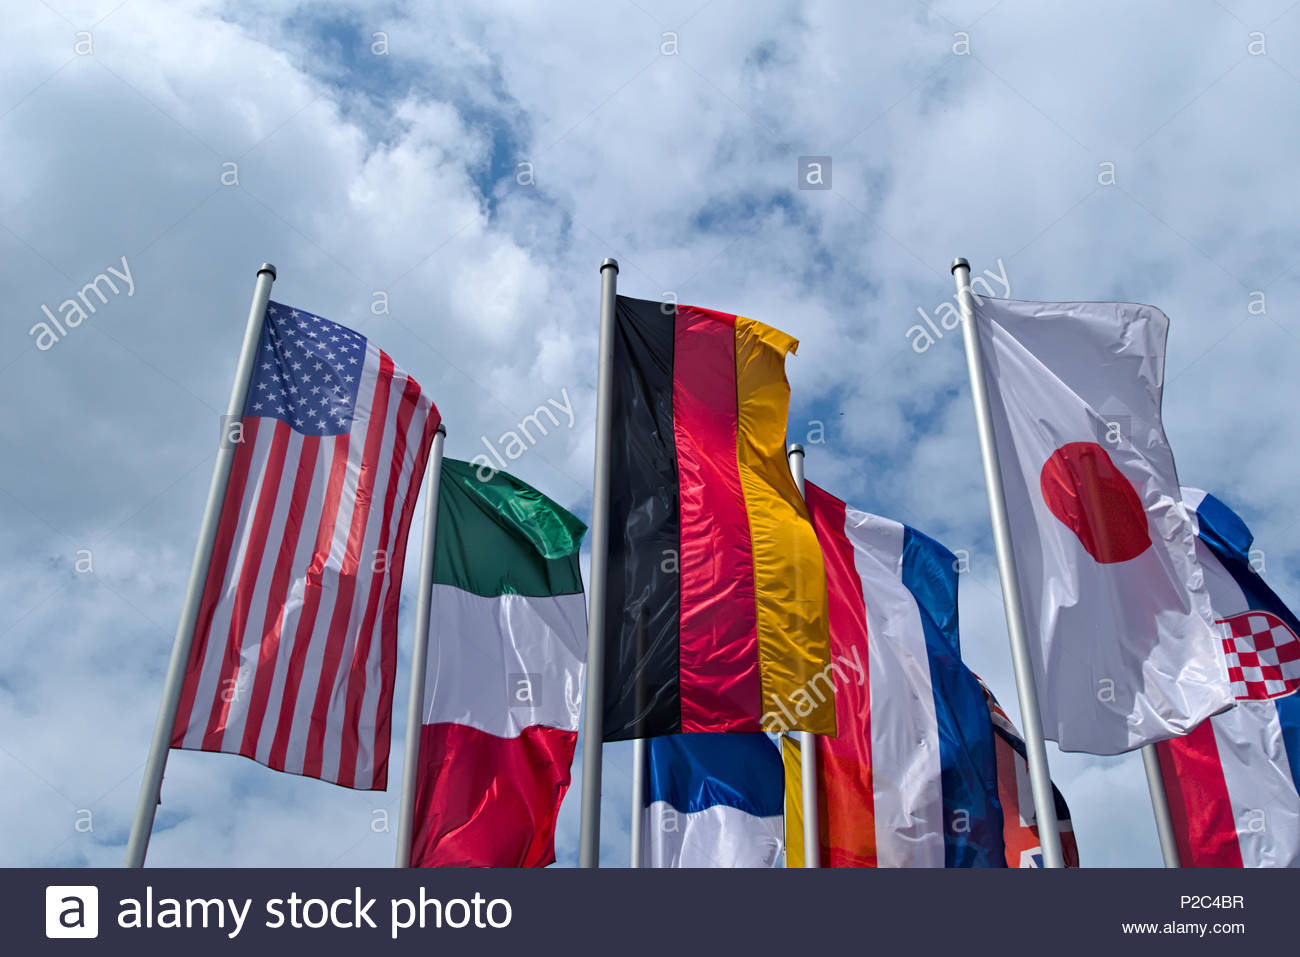 National flags: Flag of the United States, Flag of Germany, Flag of Italy, Union Jack, Flag of Japan Stock Photo